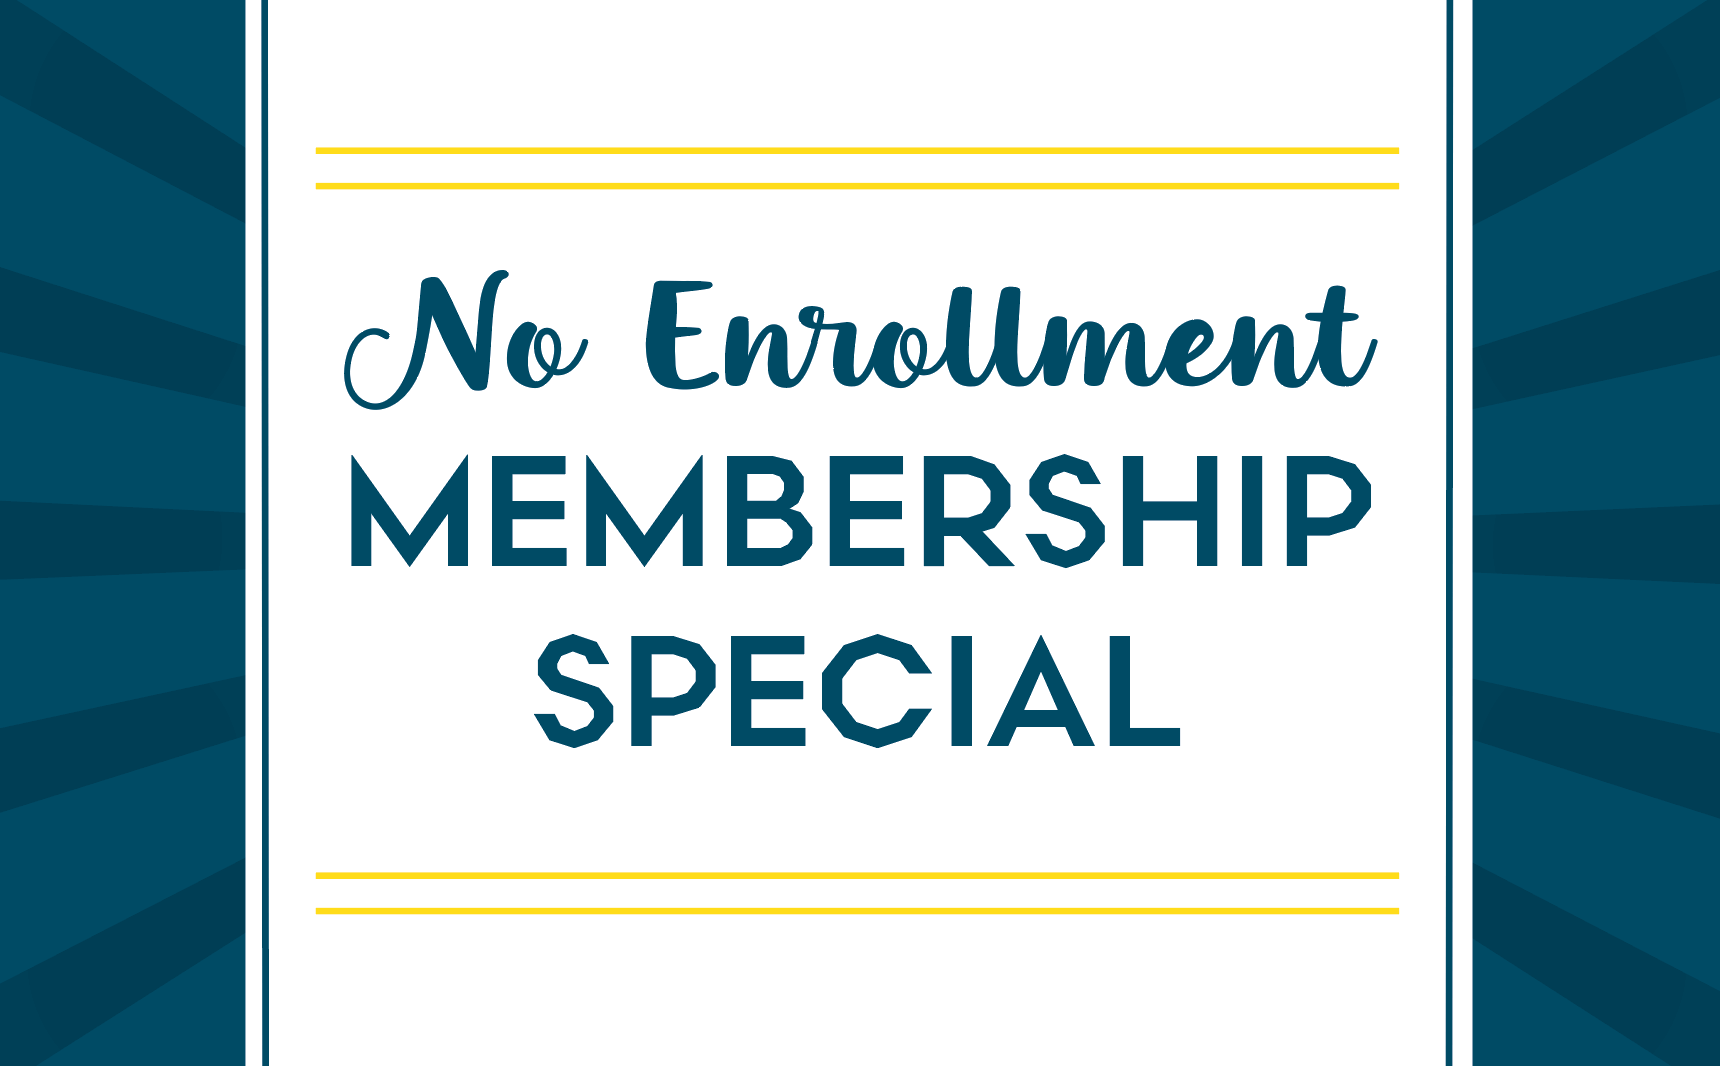 No Enrollment Special